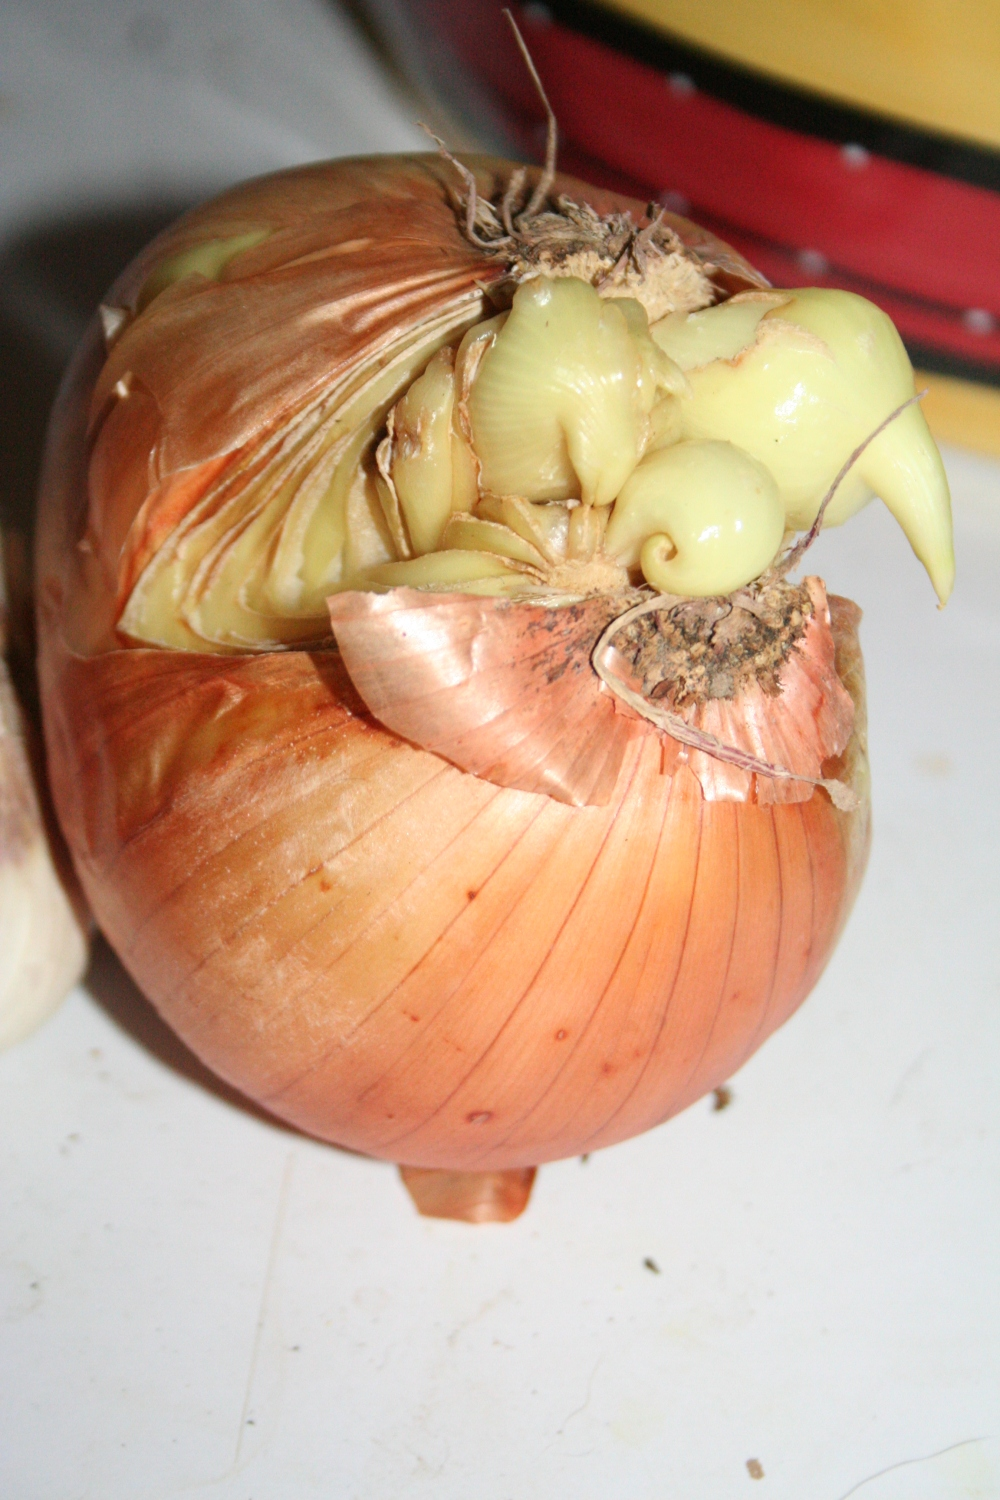 A fanged onion